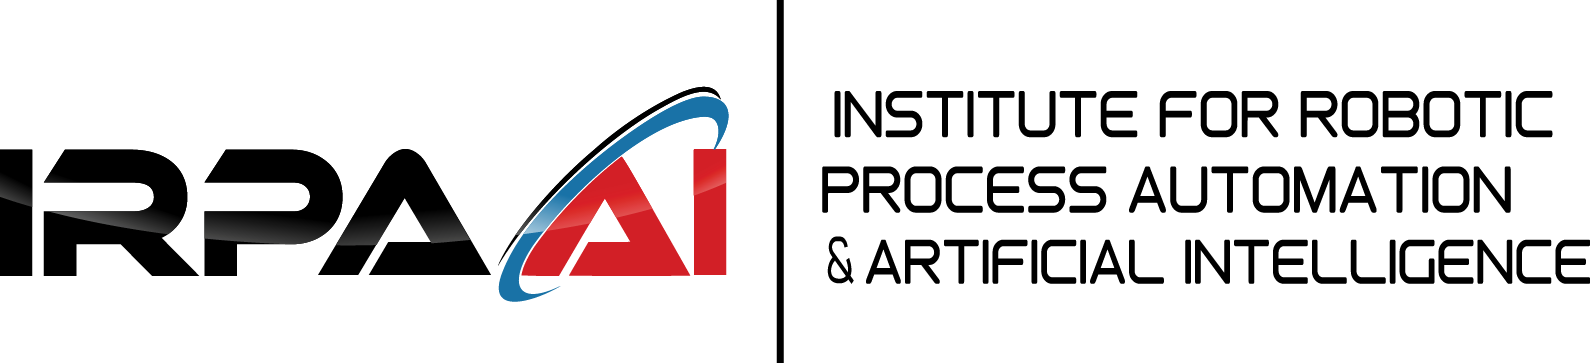 INSTITUTE FOR ROBOTIC PROCESS AUTOMATION & AI ANNOUNCES ITALY CHAPTER